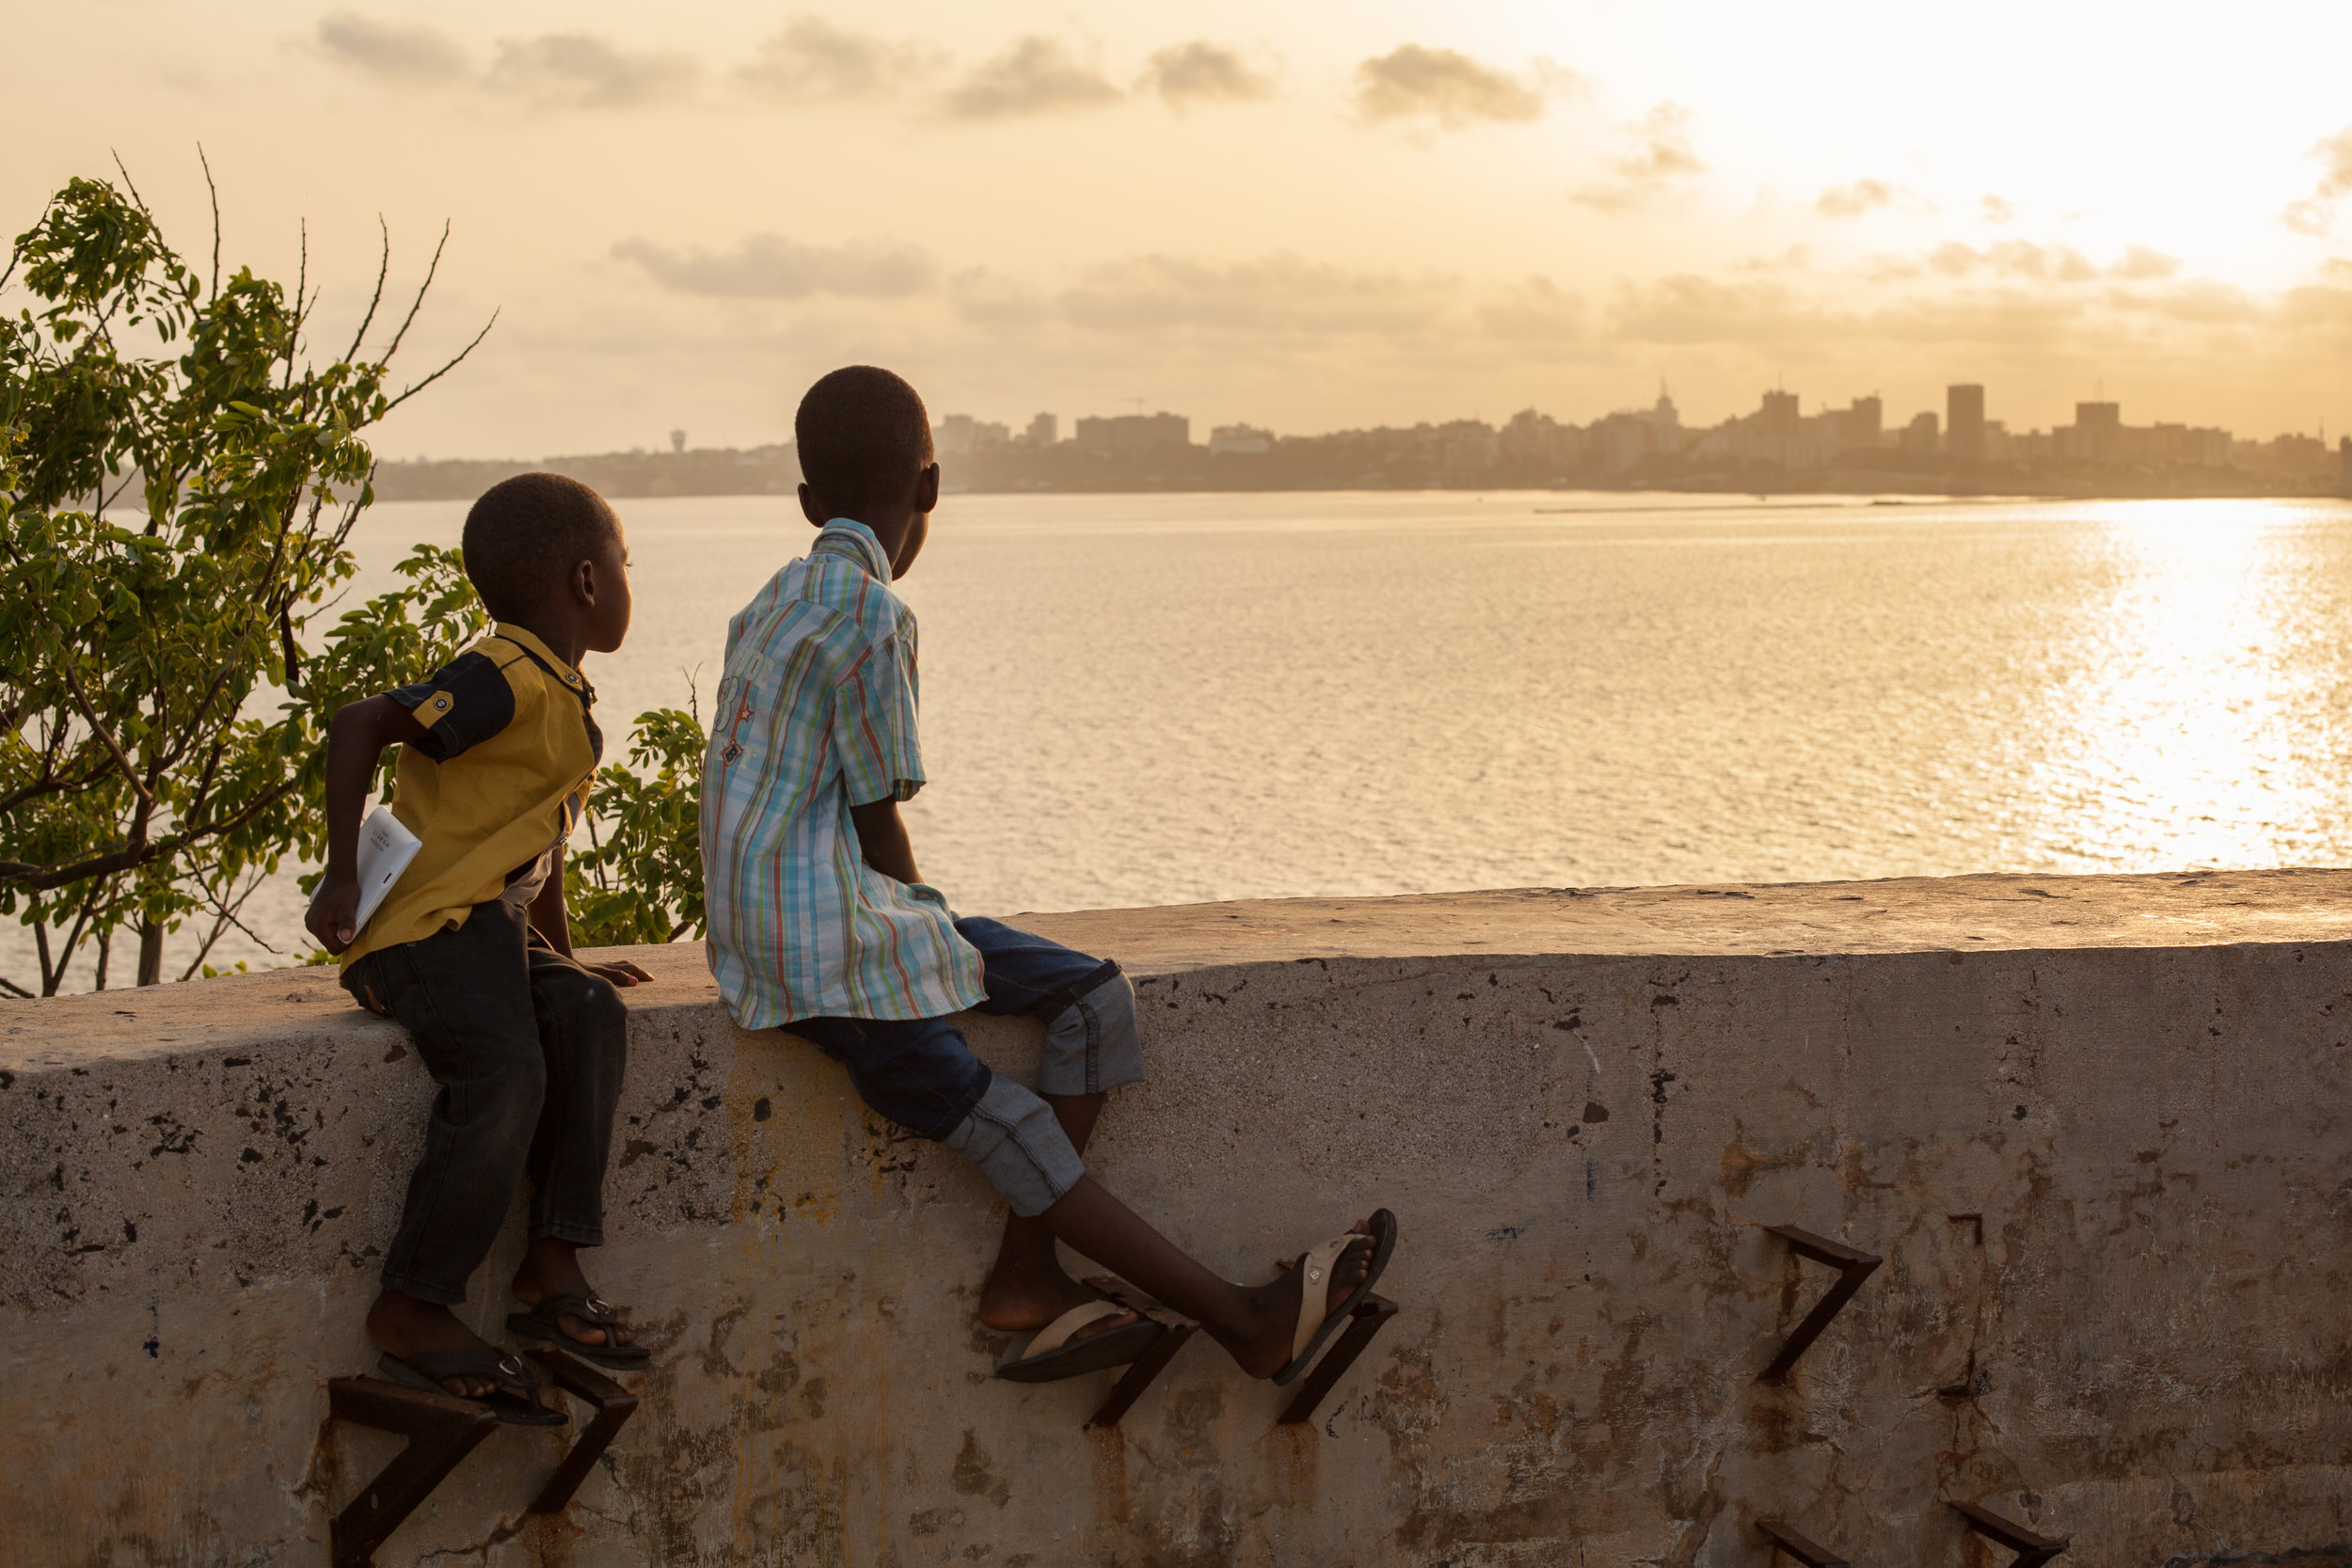 Sunset over Dakar from Gorée island, an ex slave slave colony and now a tourist destination in Senegal.